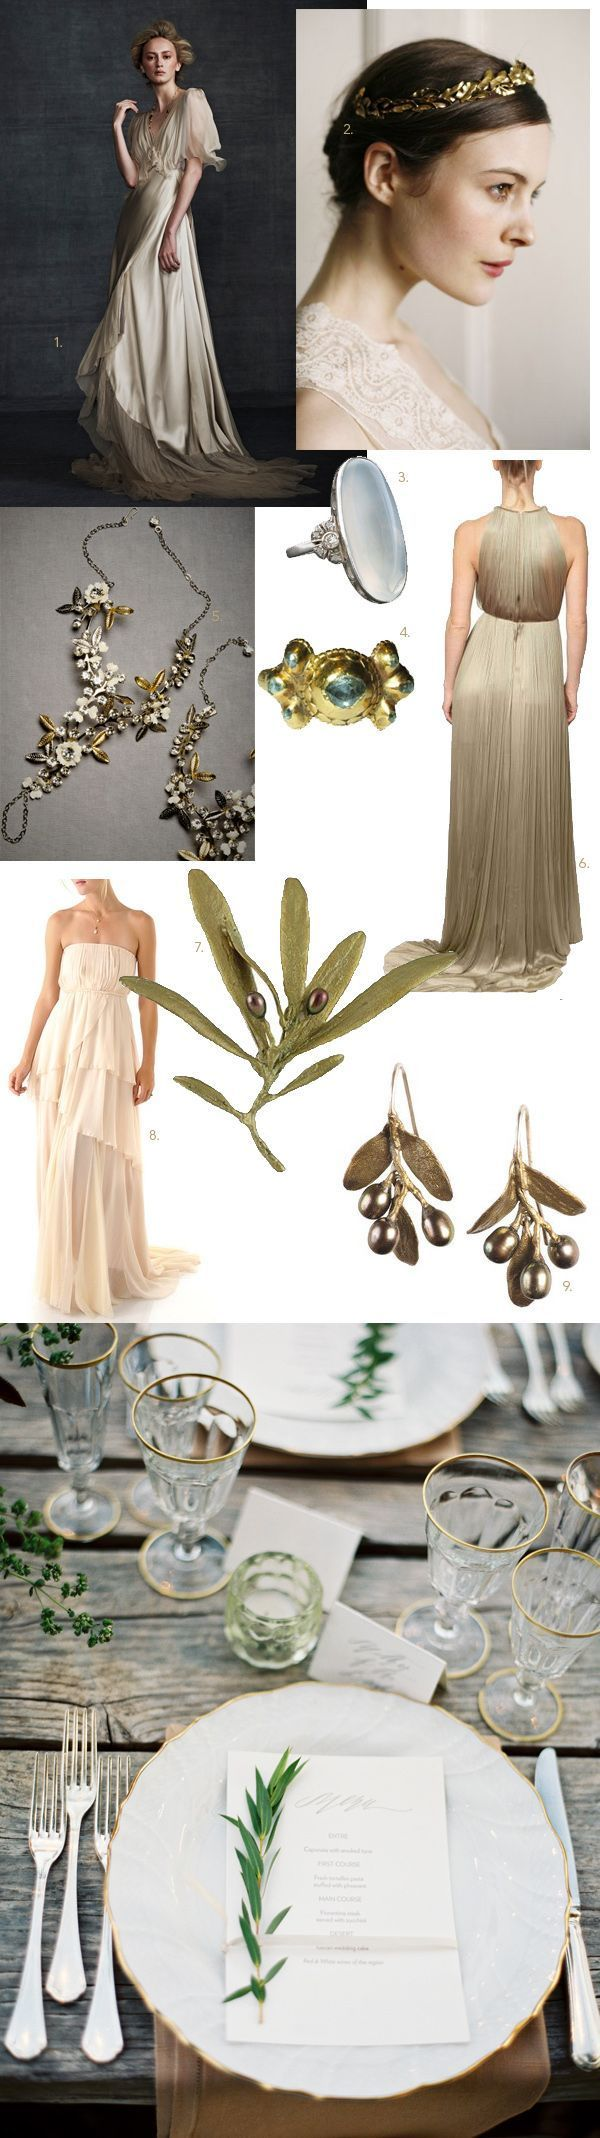 greek goddess wedding roundup greek goddess wedding dress Greek Roundup